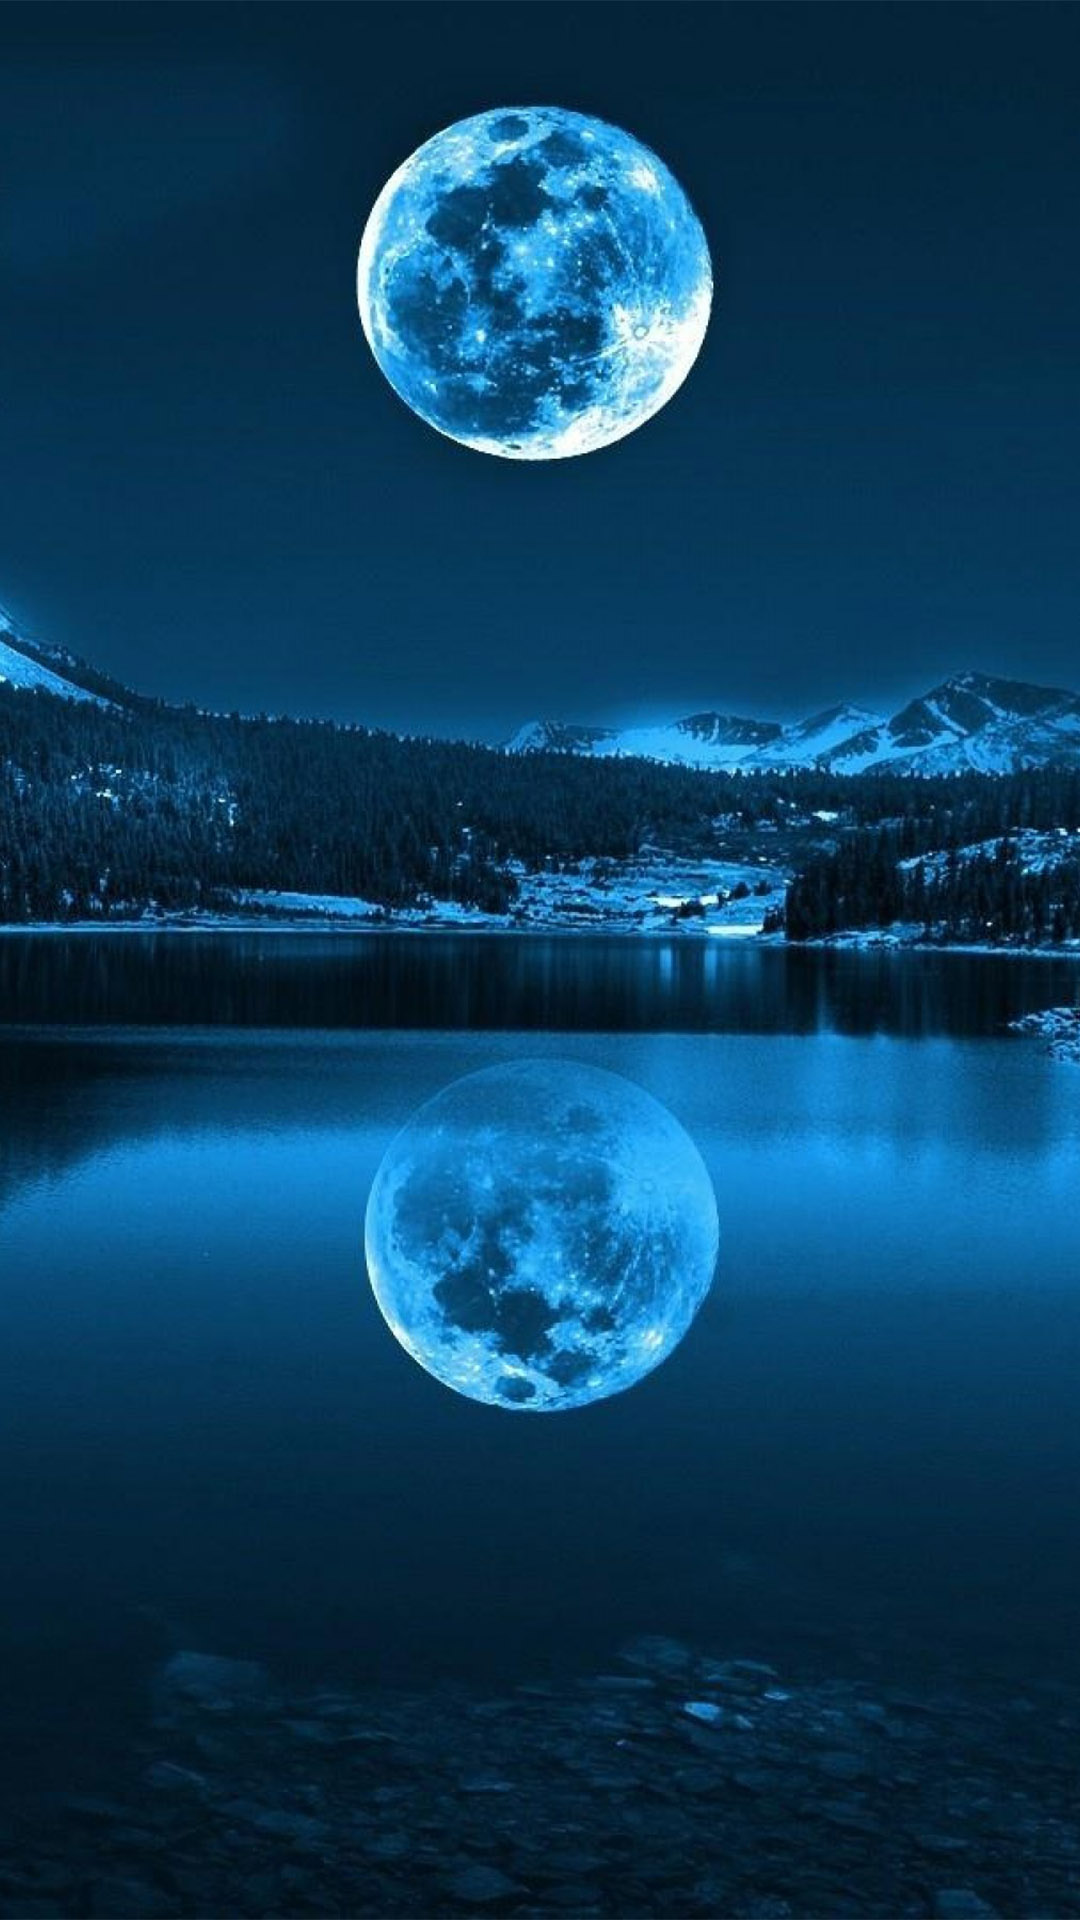 Giant Moon Rise Smartphone Wallpapers Hd Getphotos